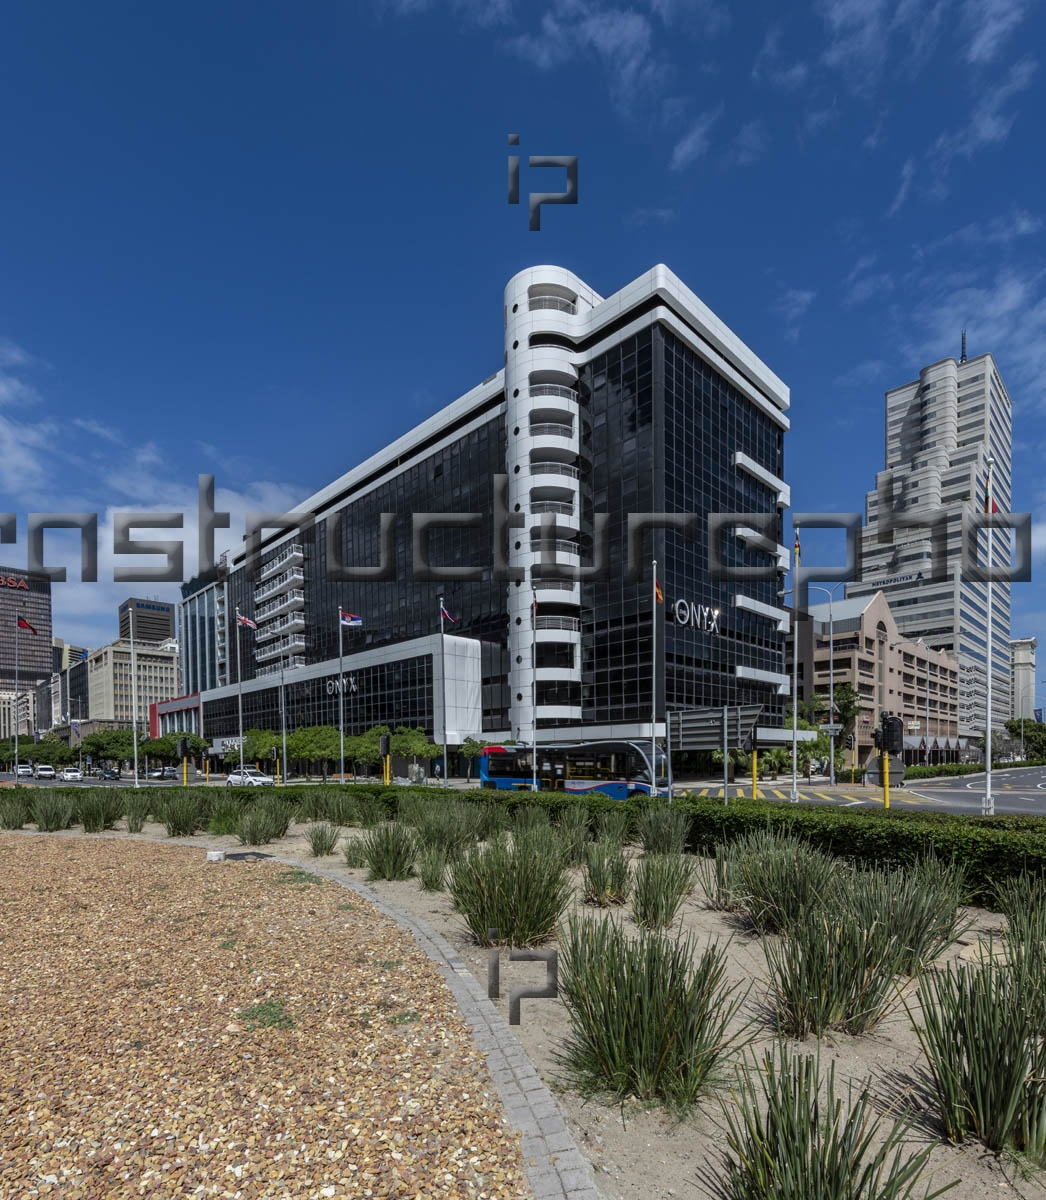 The Onyx Cape Town